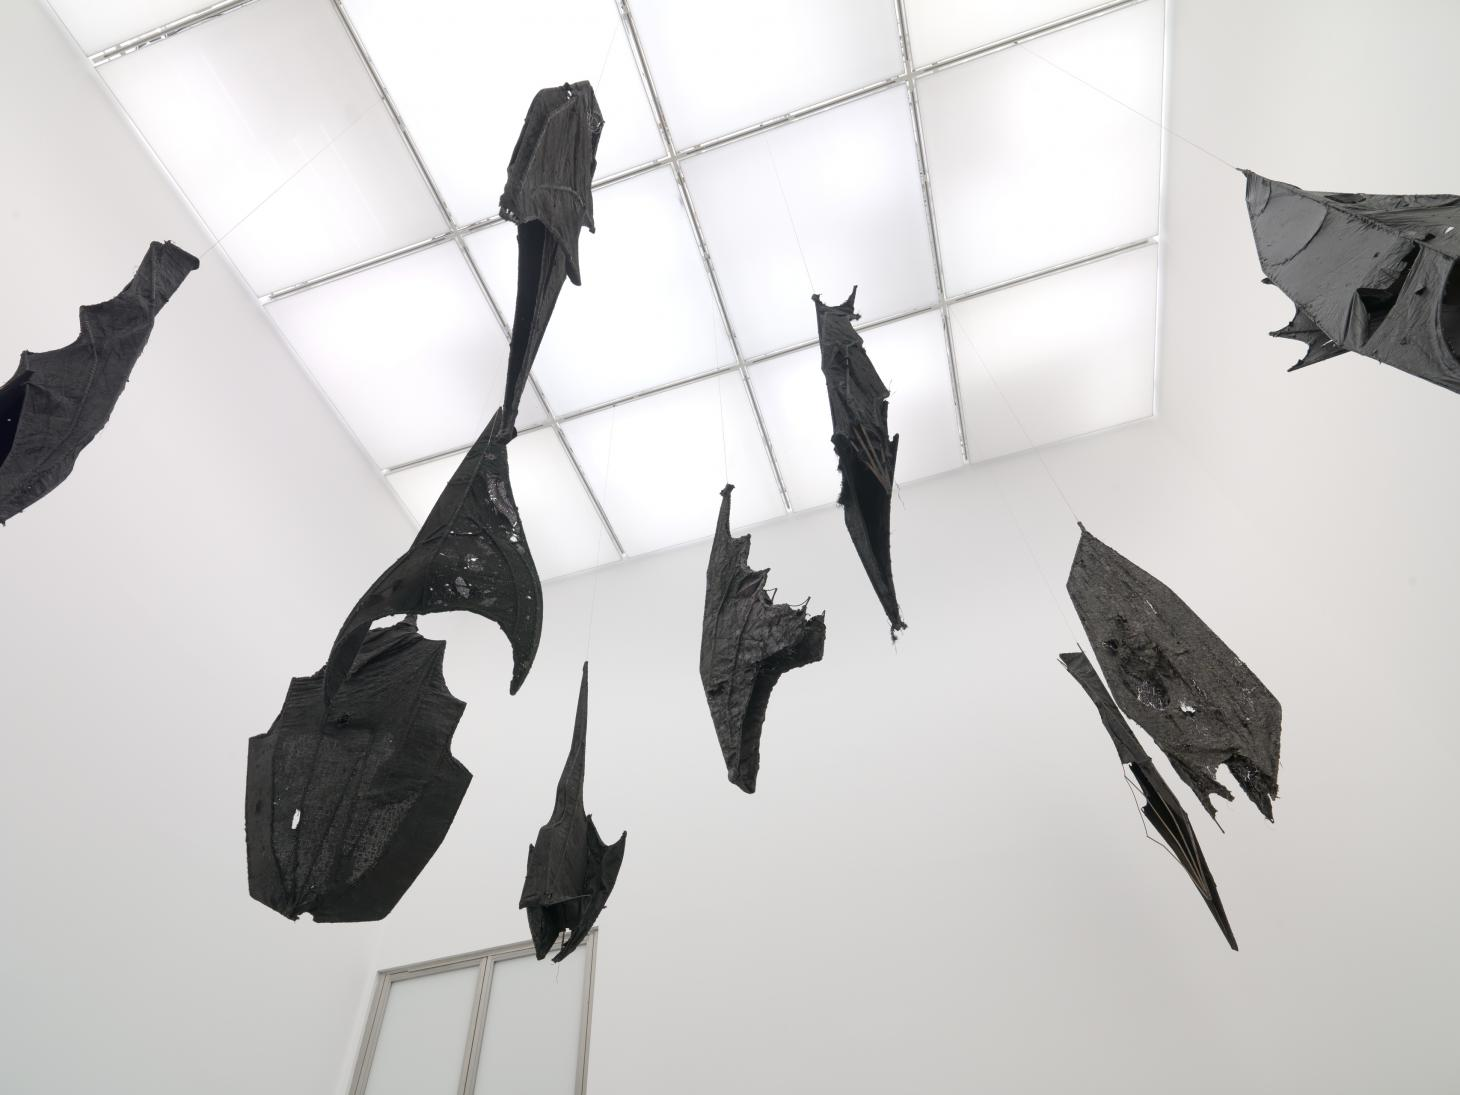 Black artwork bats hang from white ceiling at White Cube, exhibition by Ibrahim Mahama